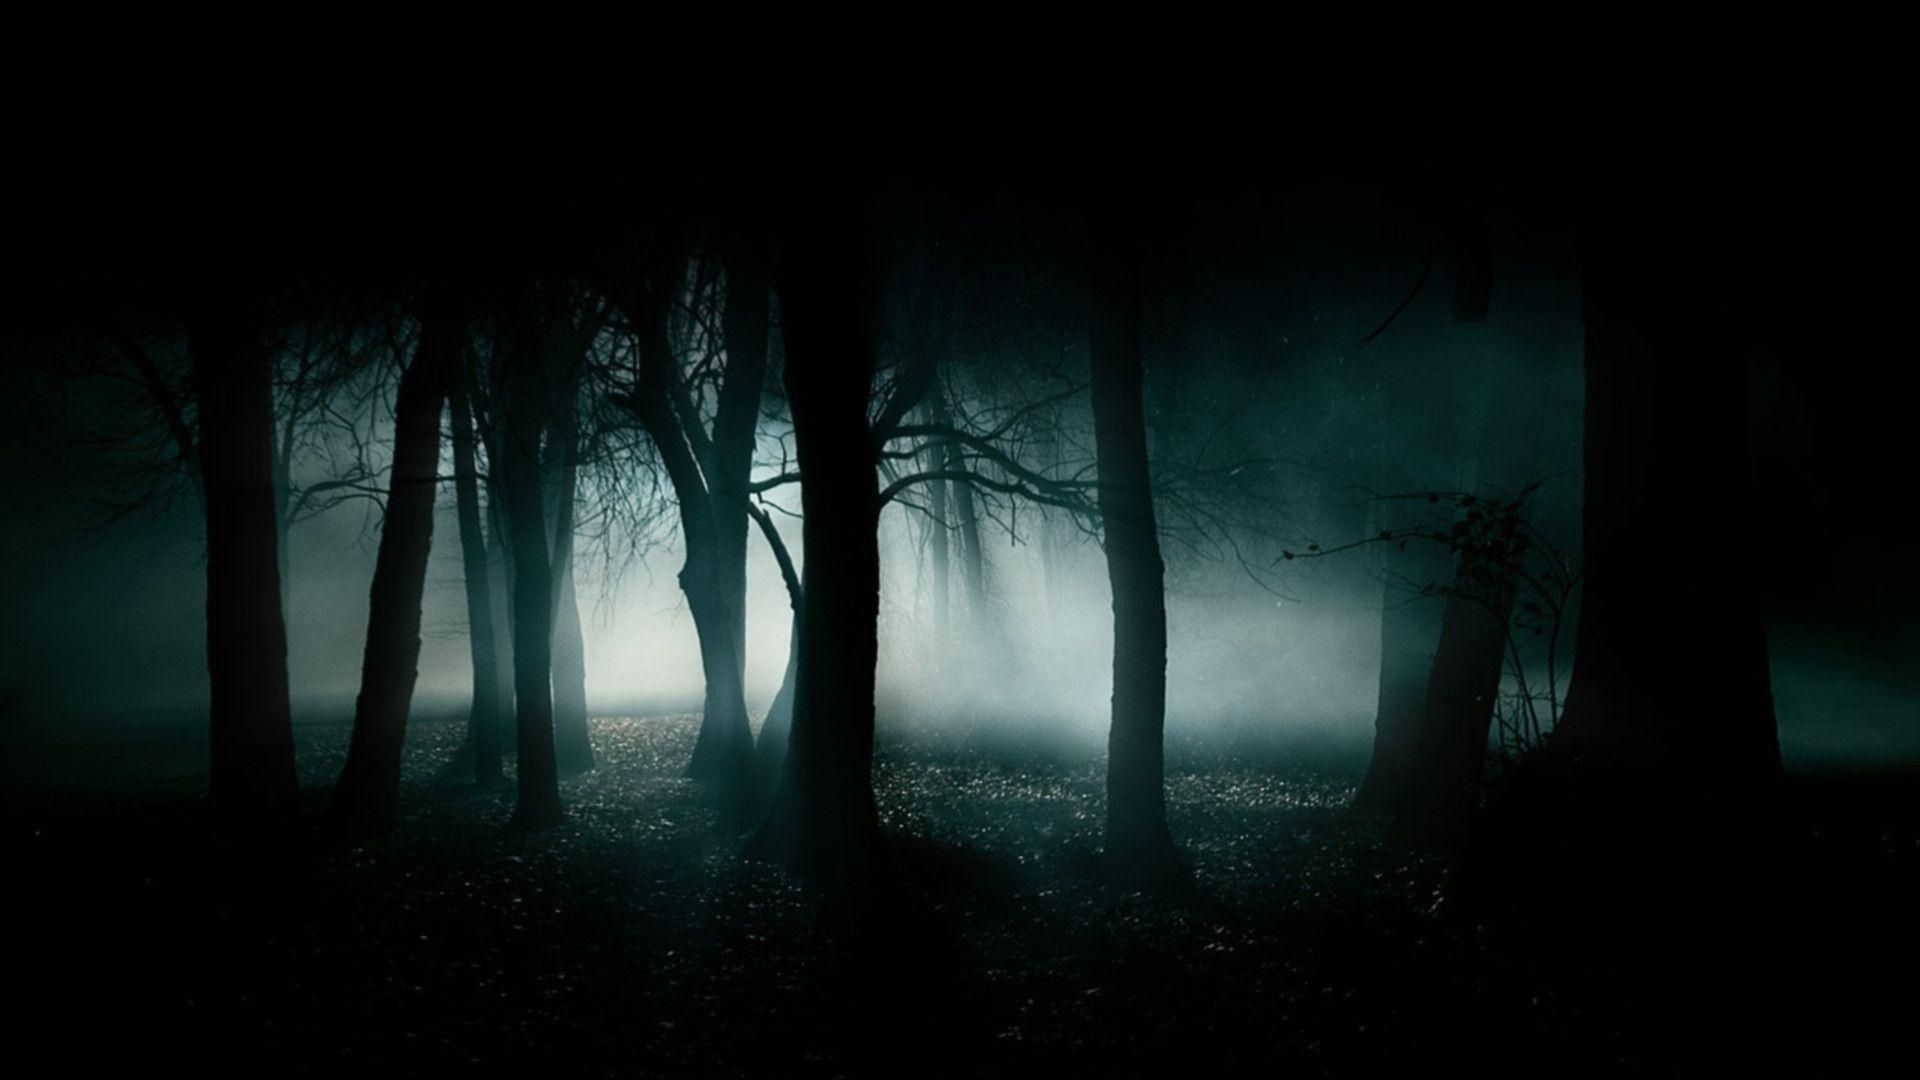 10 Top Dark Hd Wallpapers 1920x1080 Full Hd 1920 1080 For Pc Desktop Forest Wallpaper Haunted Forest Dark Wallpaper